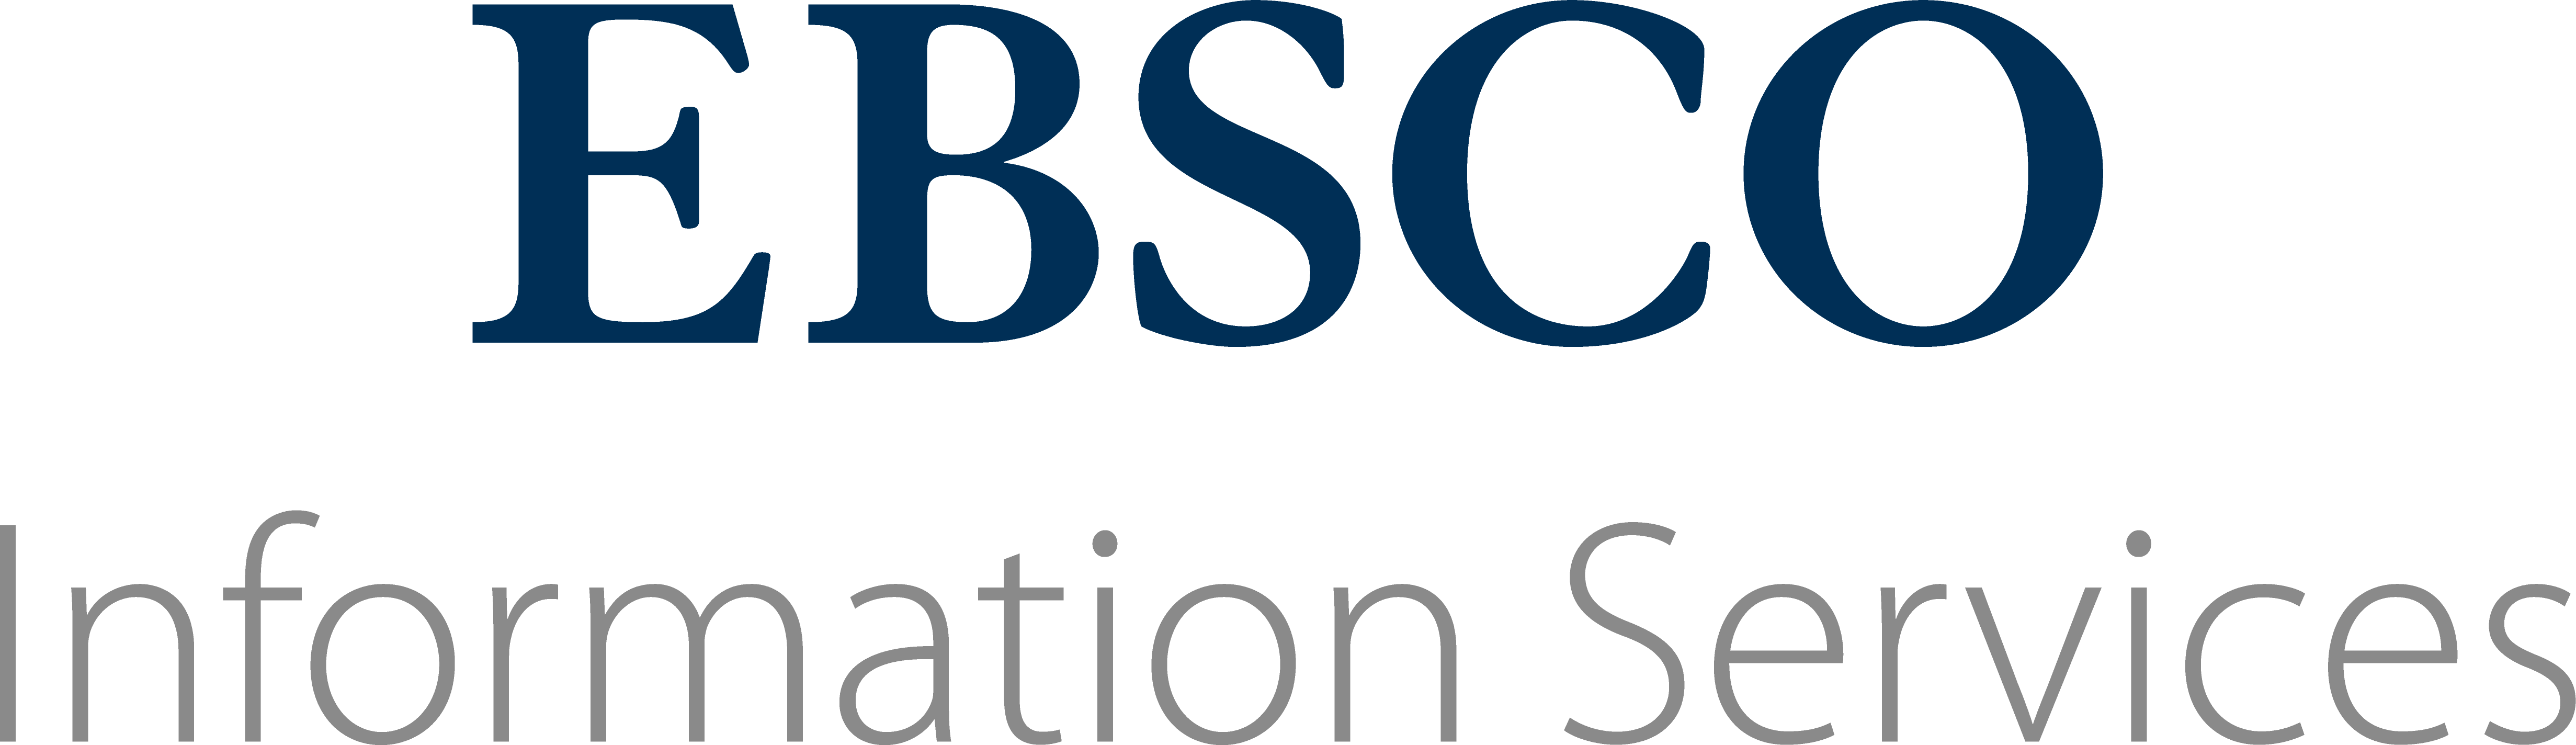 EBSCO Information Services_Logo_RGB_Stacked.png